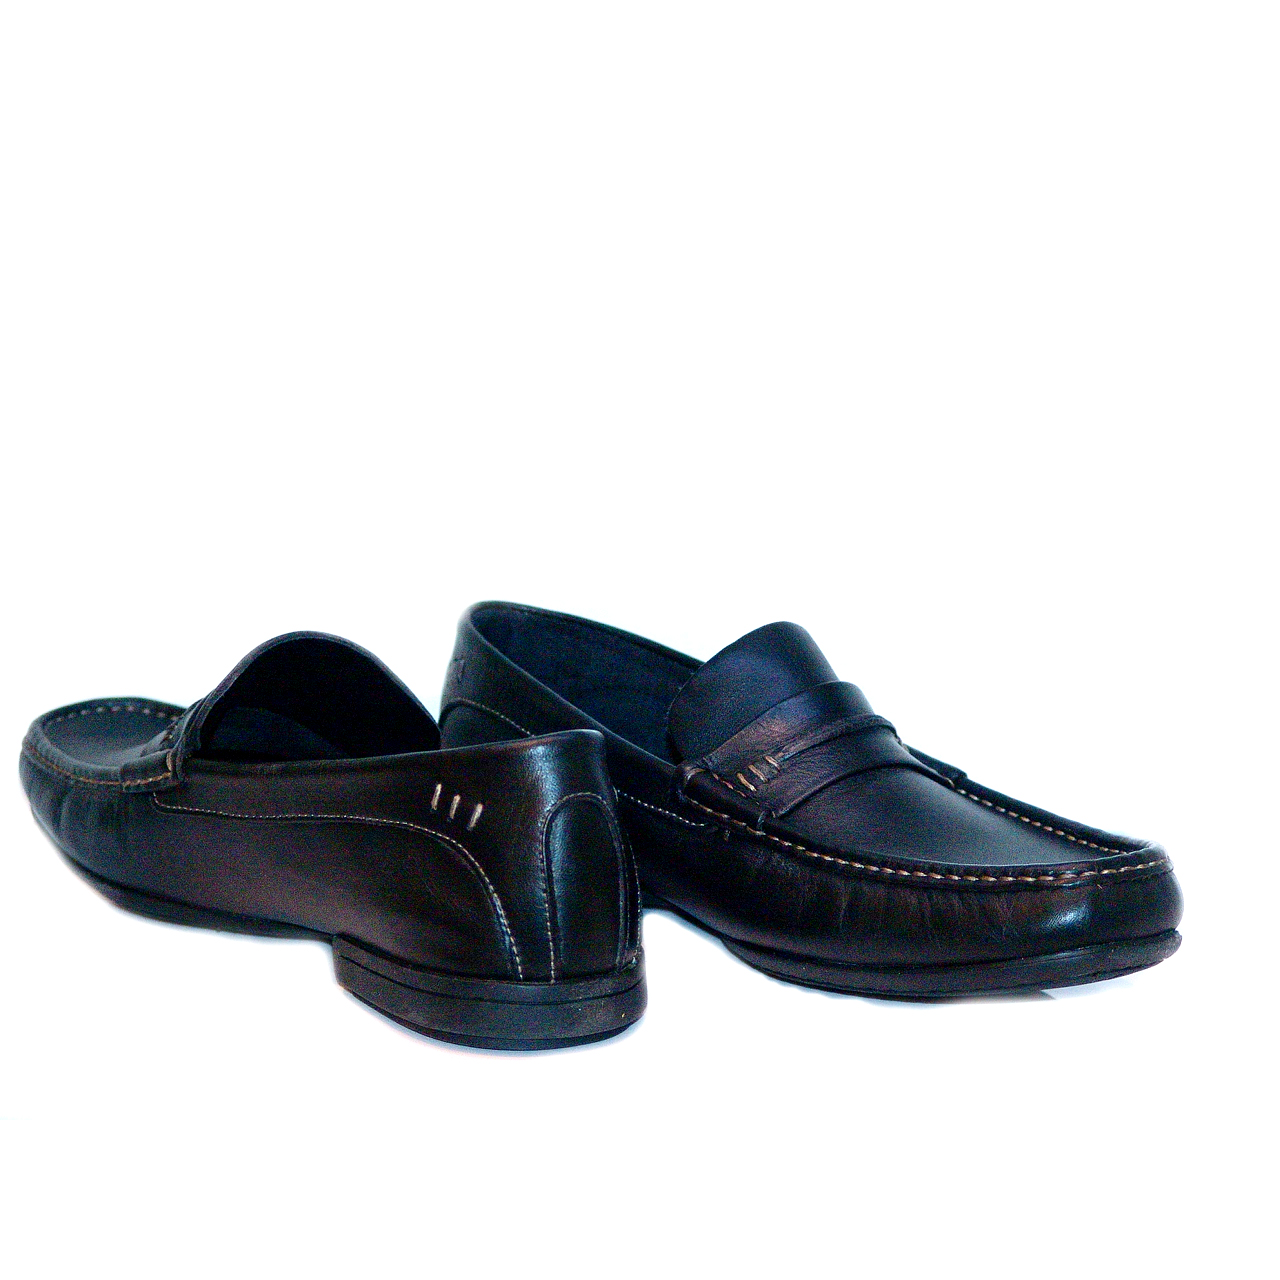 Paraboot Barjact (91512) Waxy Leather Loafer Black